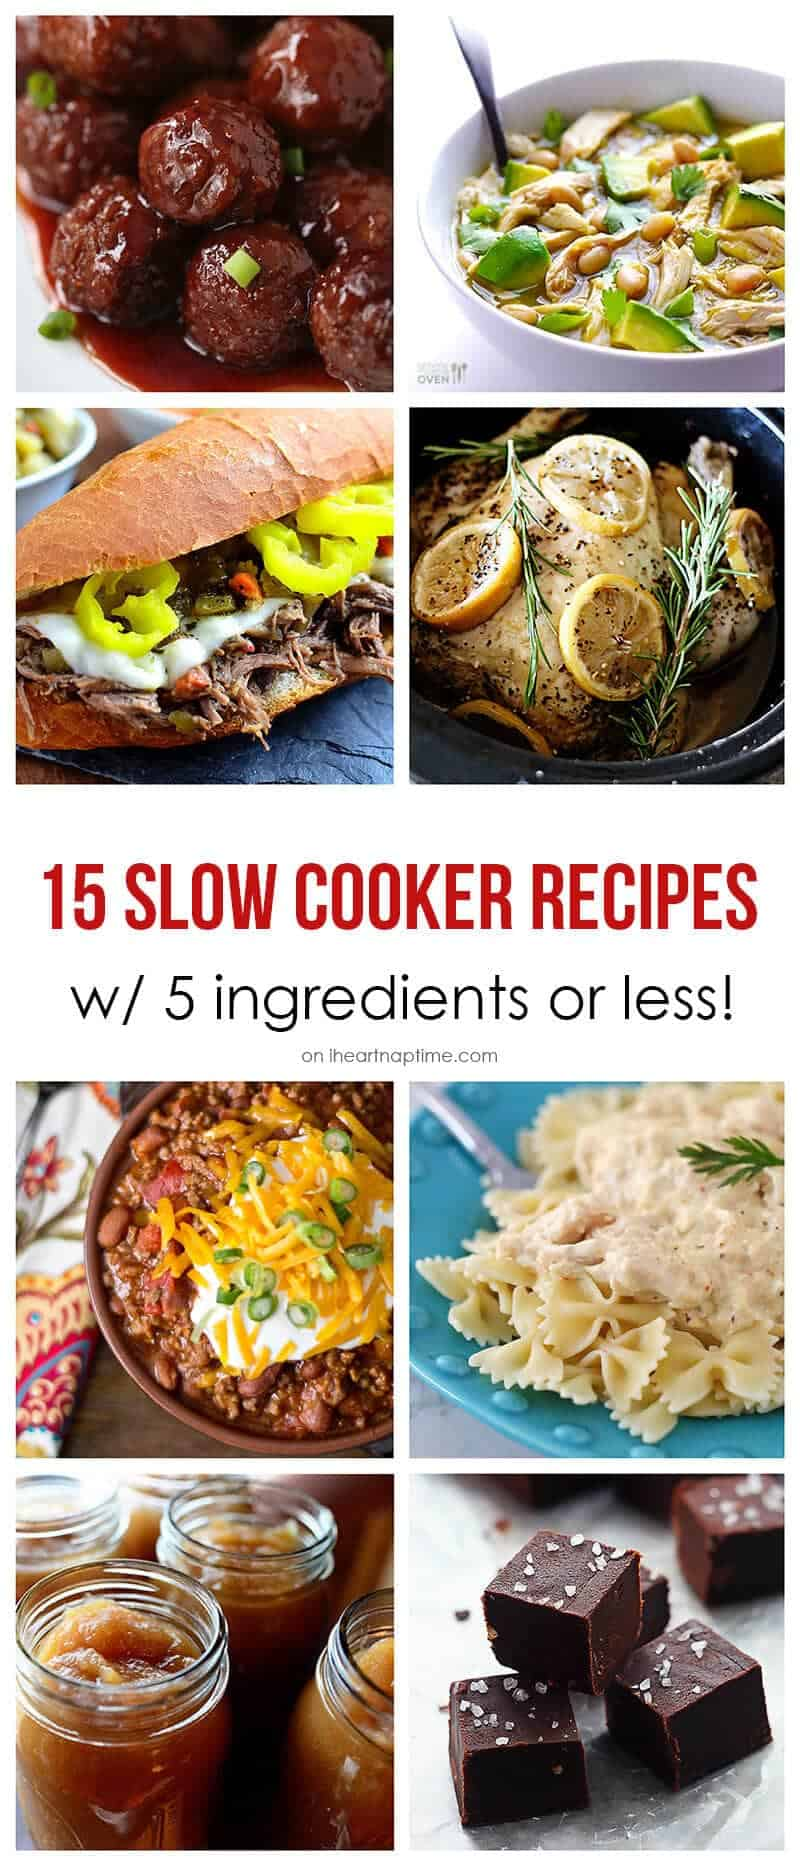 15 Slow Cooker Recipes with 5 ingredients or less on iheartnaptime.com